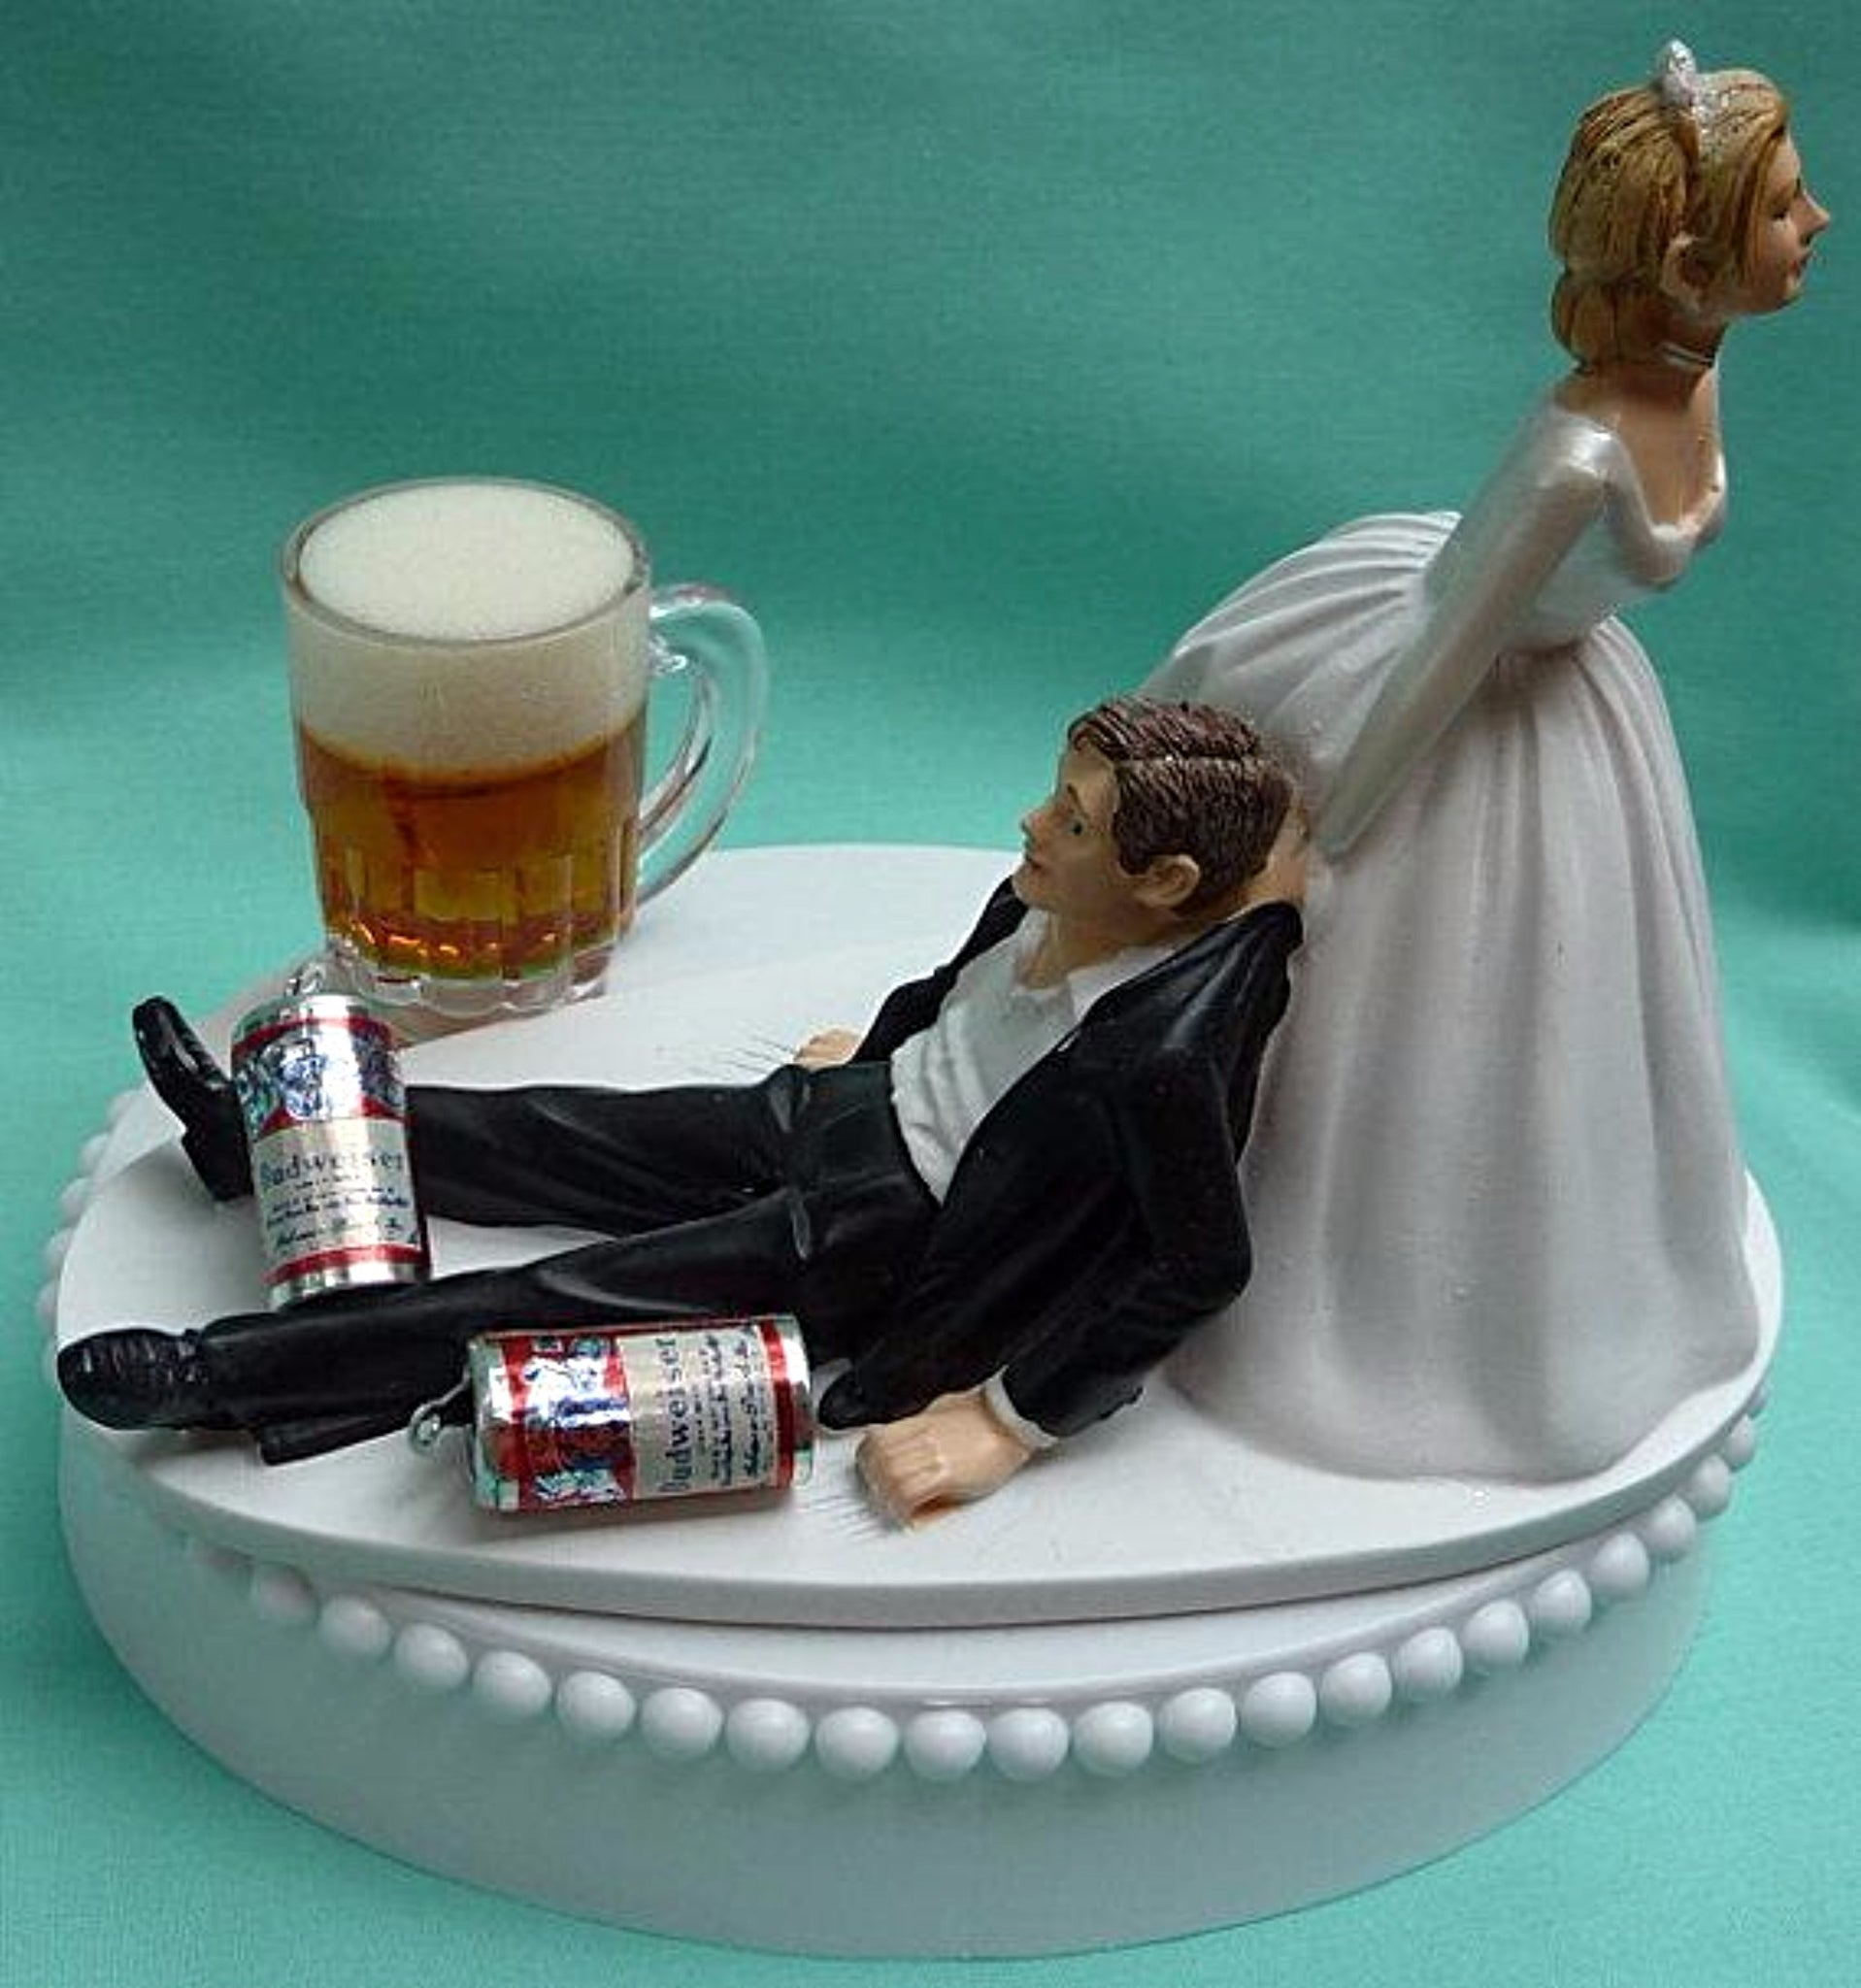 Budweiser beer wedding cake topper Bud Fun Wedding Things bride dragging groom funny drinking humorous cans